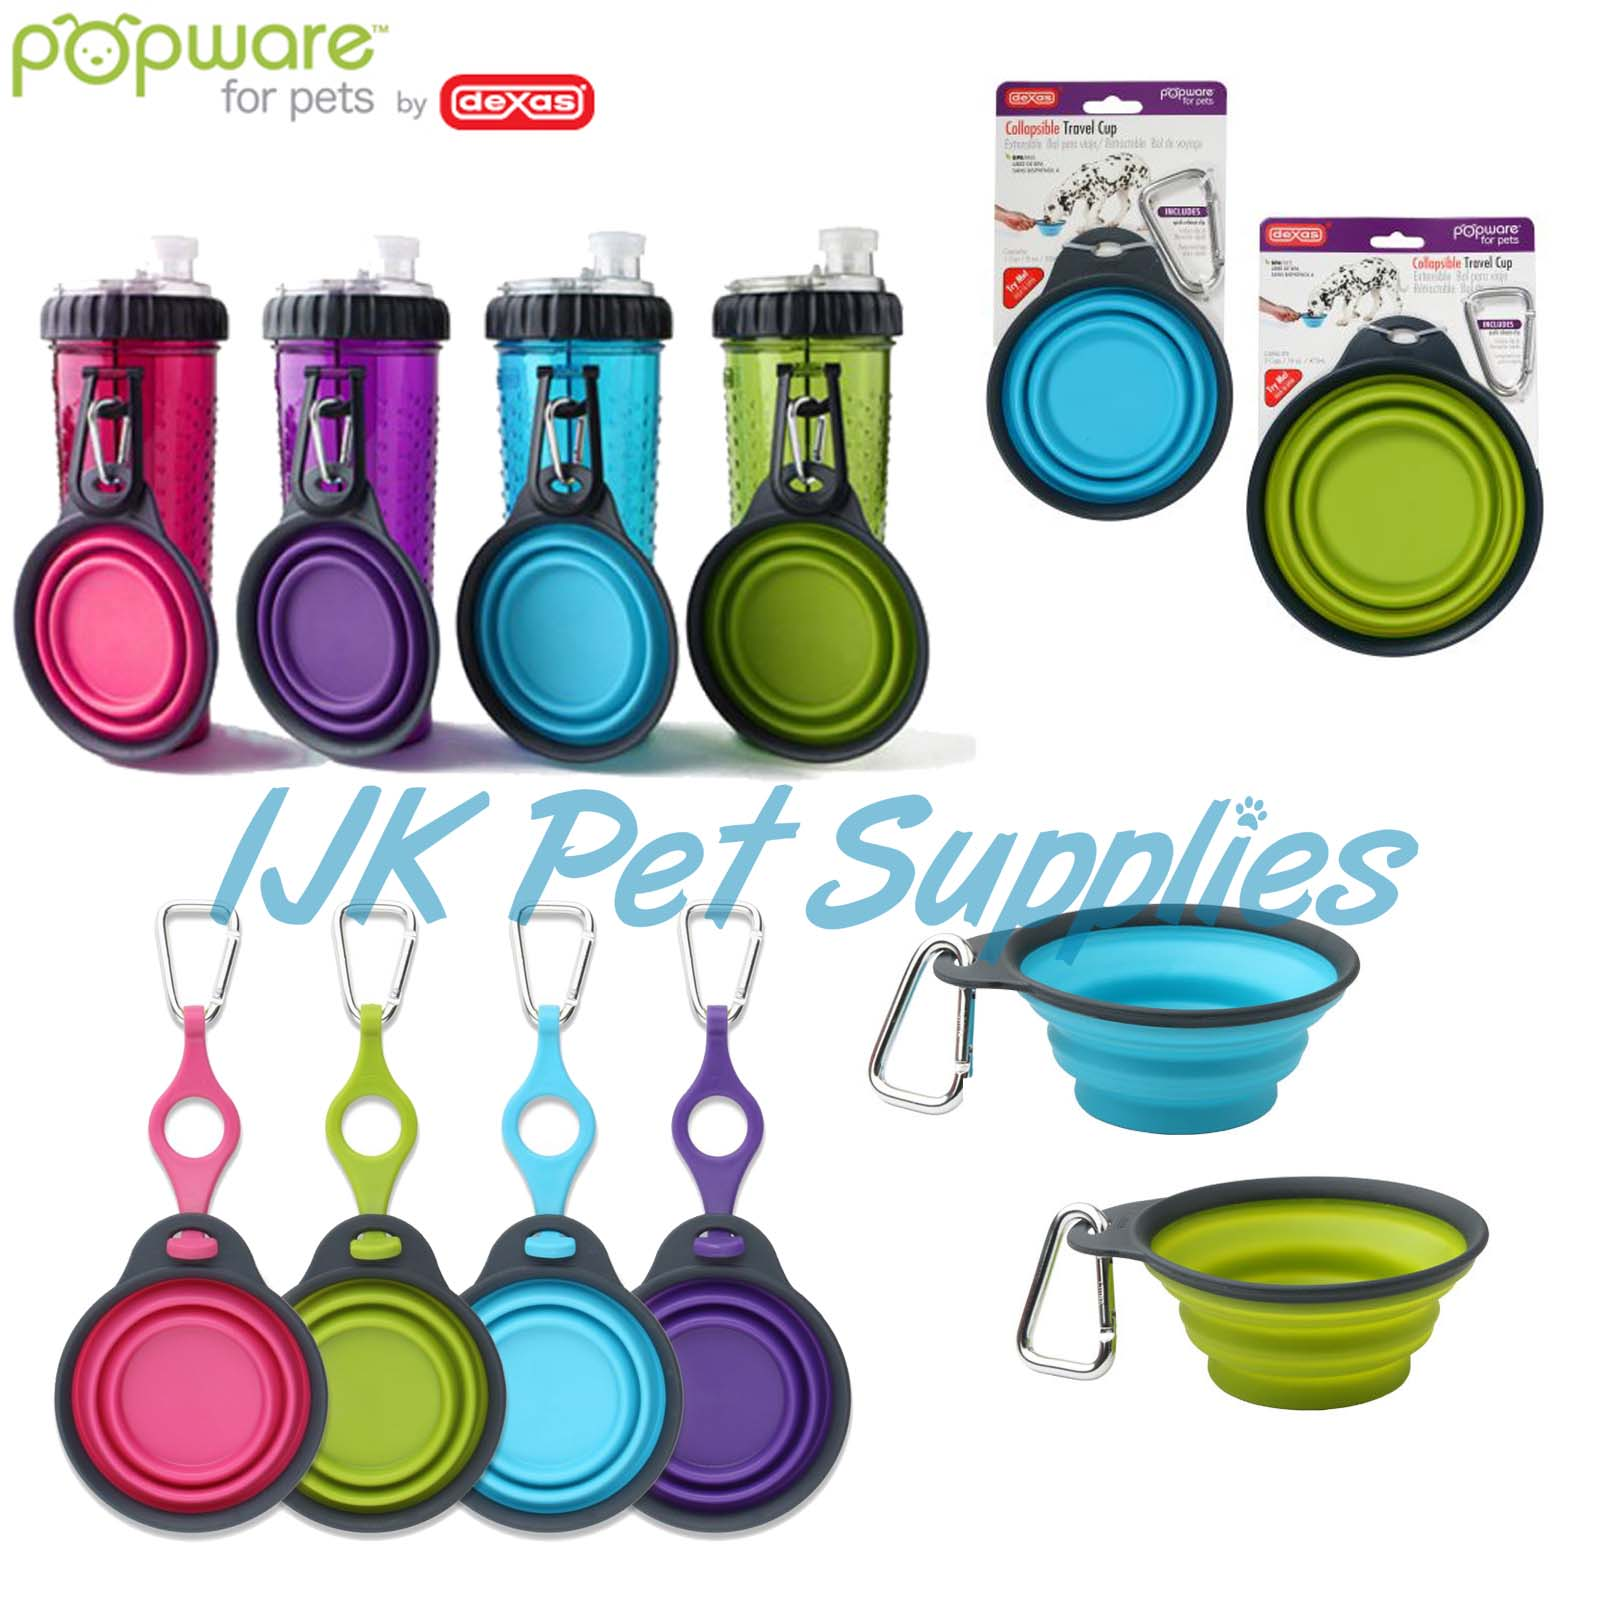 Communication on this topic: Dexas Popware for Pets Accessories, dexas-popware-for-pets-accessories/